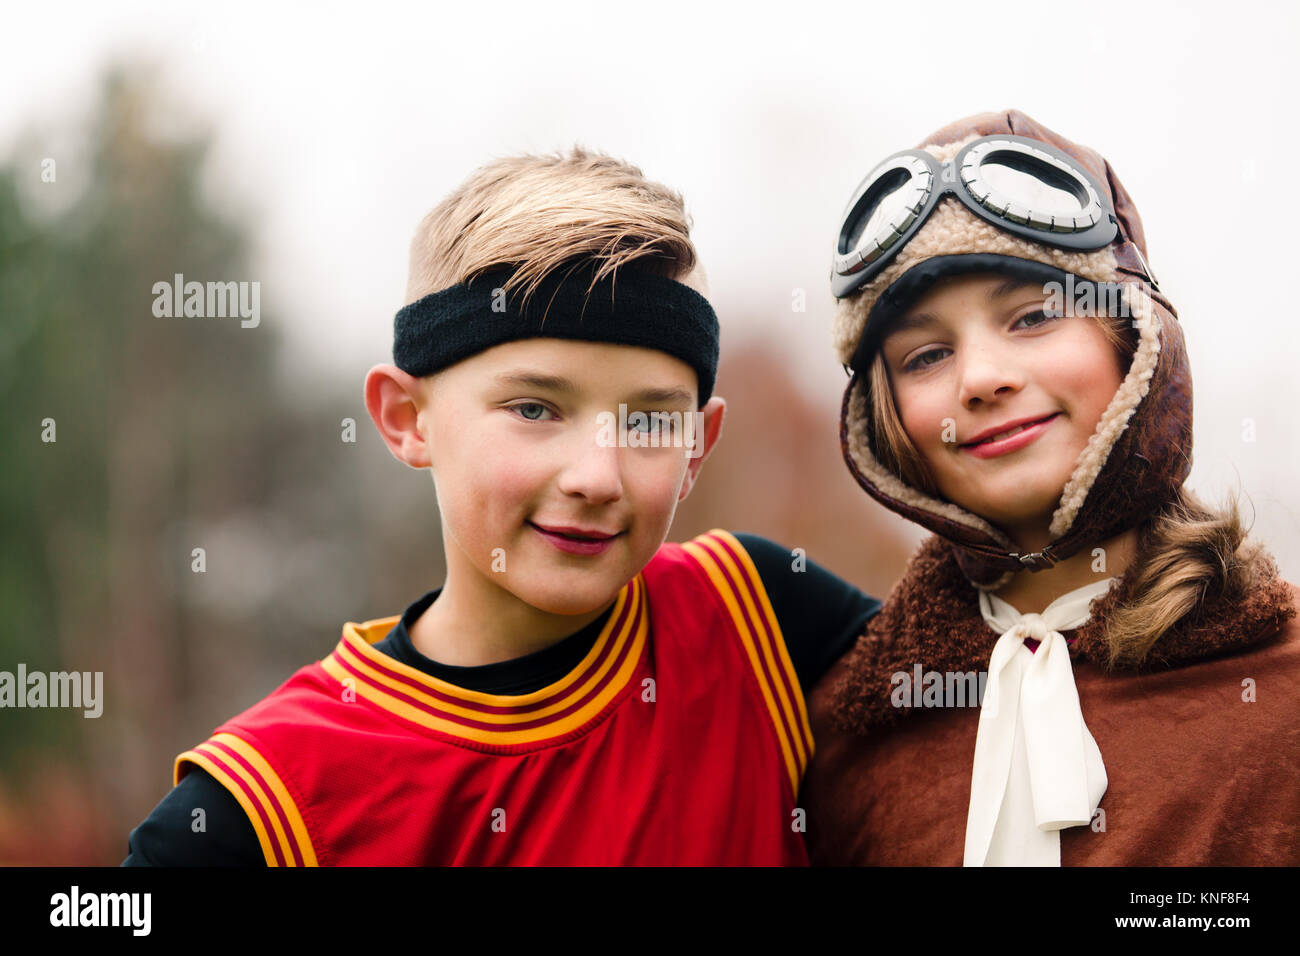 Portrait of boy and twin sister wearing basketball and pilot costumes for halloween - Stock Image